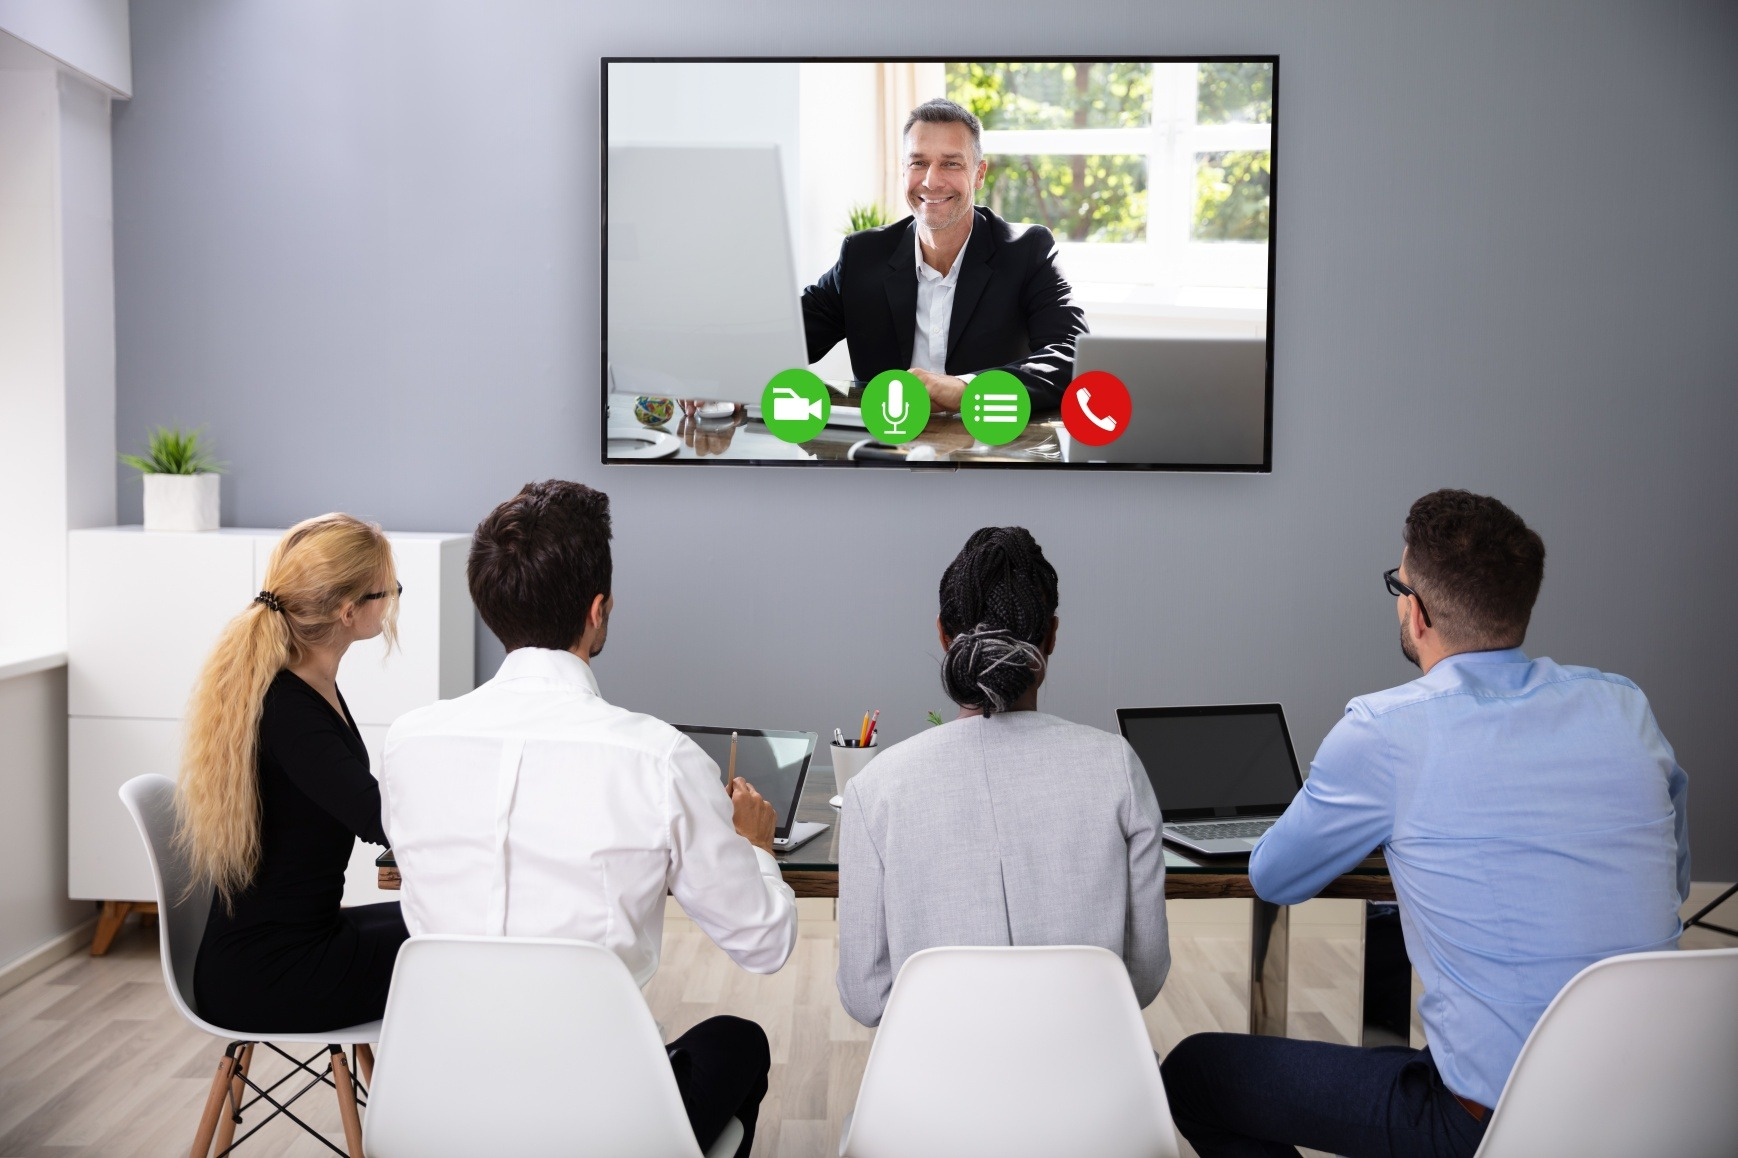 Webcast Platforms To Run Your Business Remotely